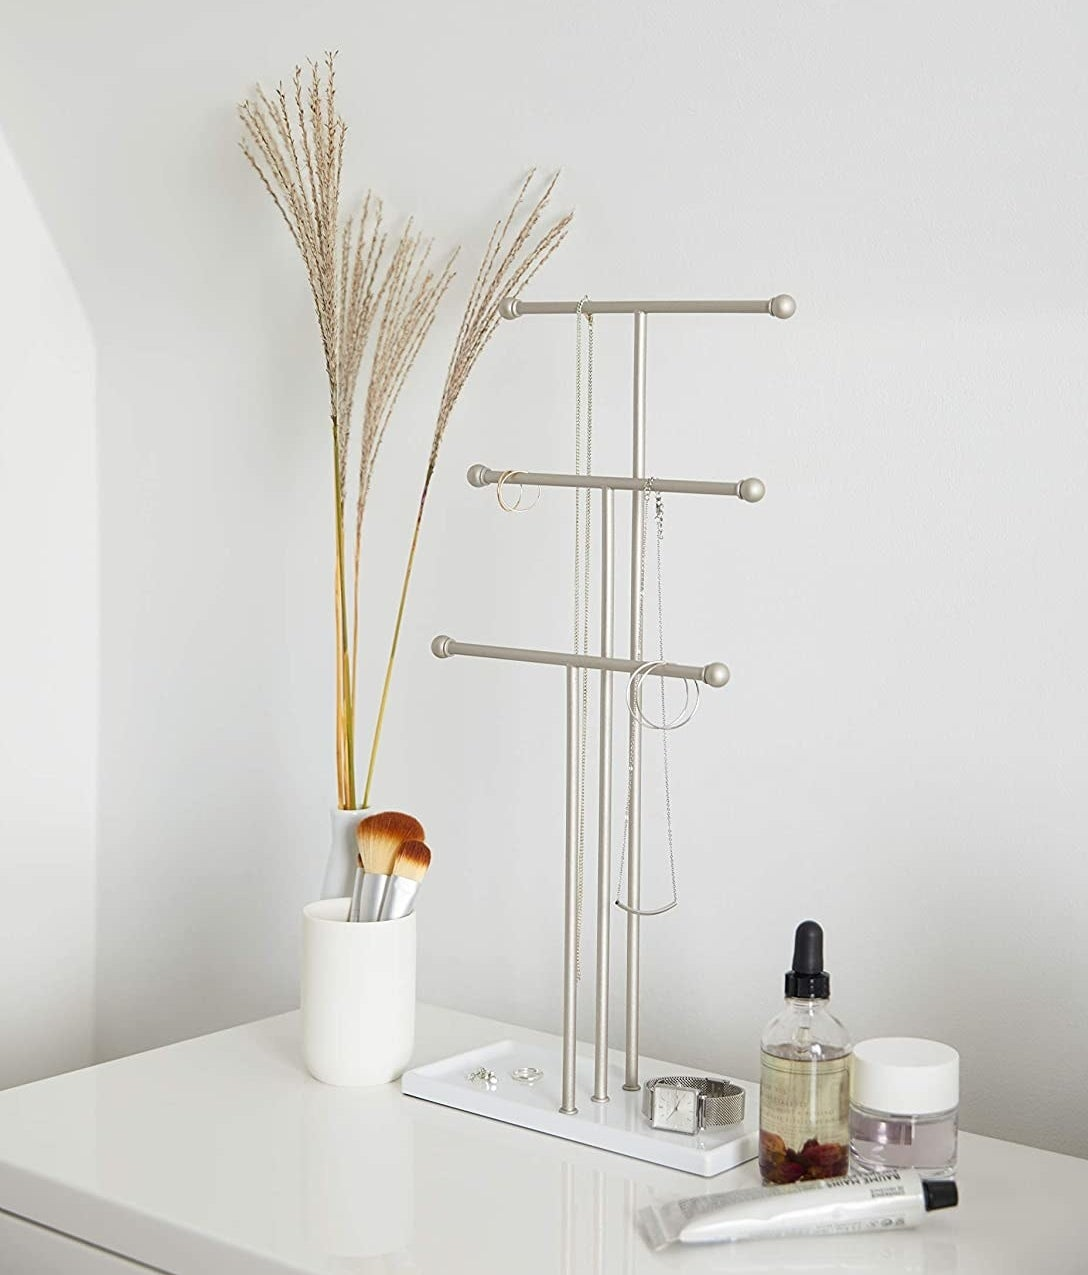 The jewelry stand on a minimalist vanity with necklaces hanging off of it